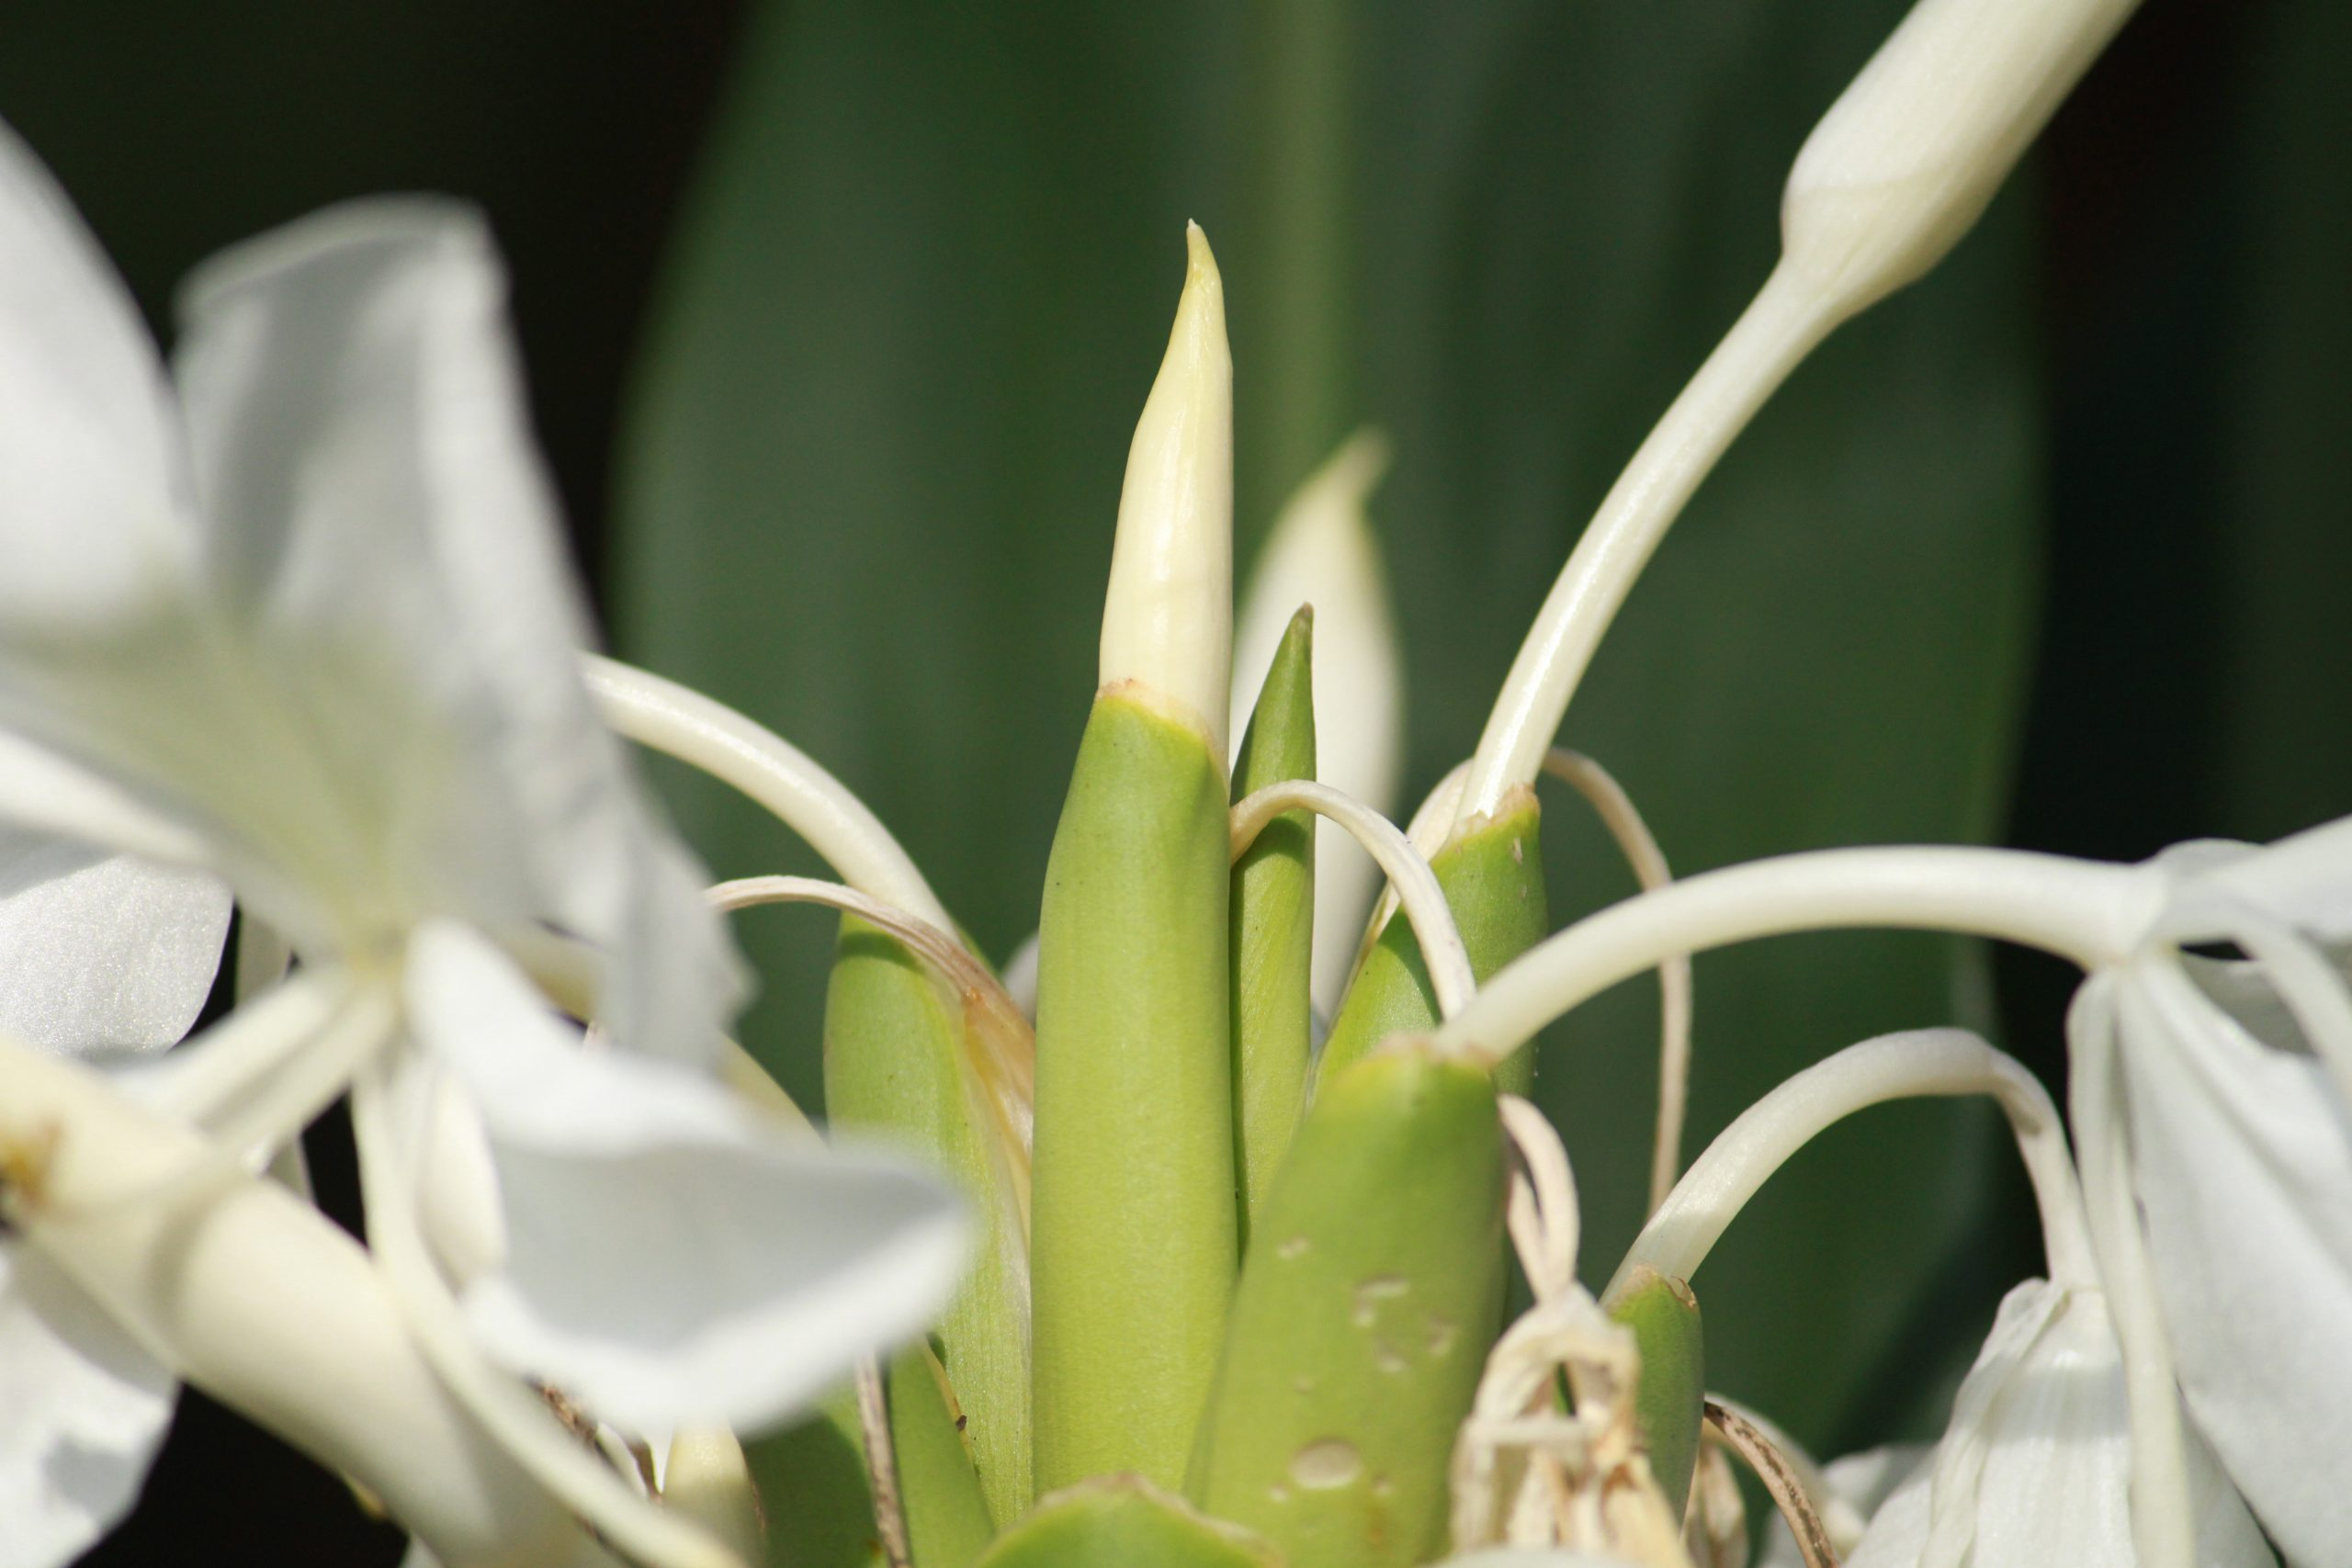 close-up of a bud